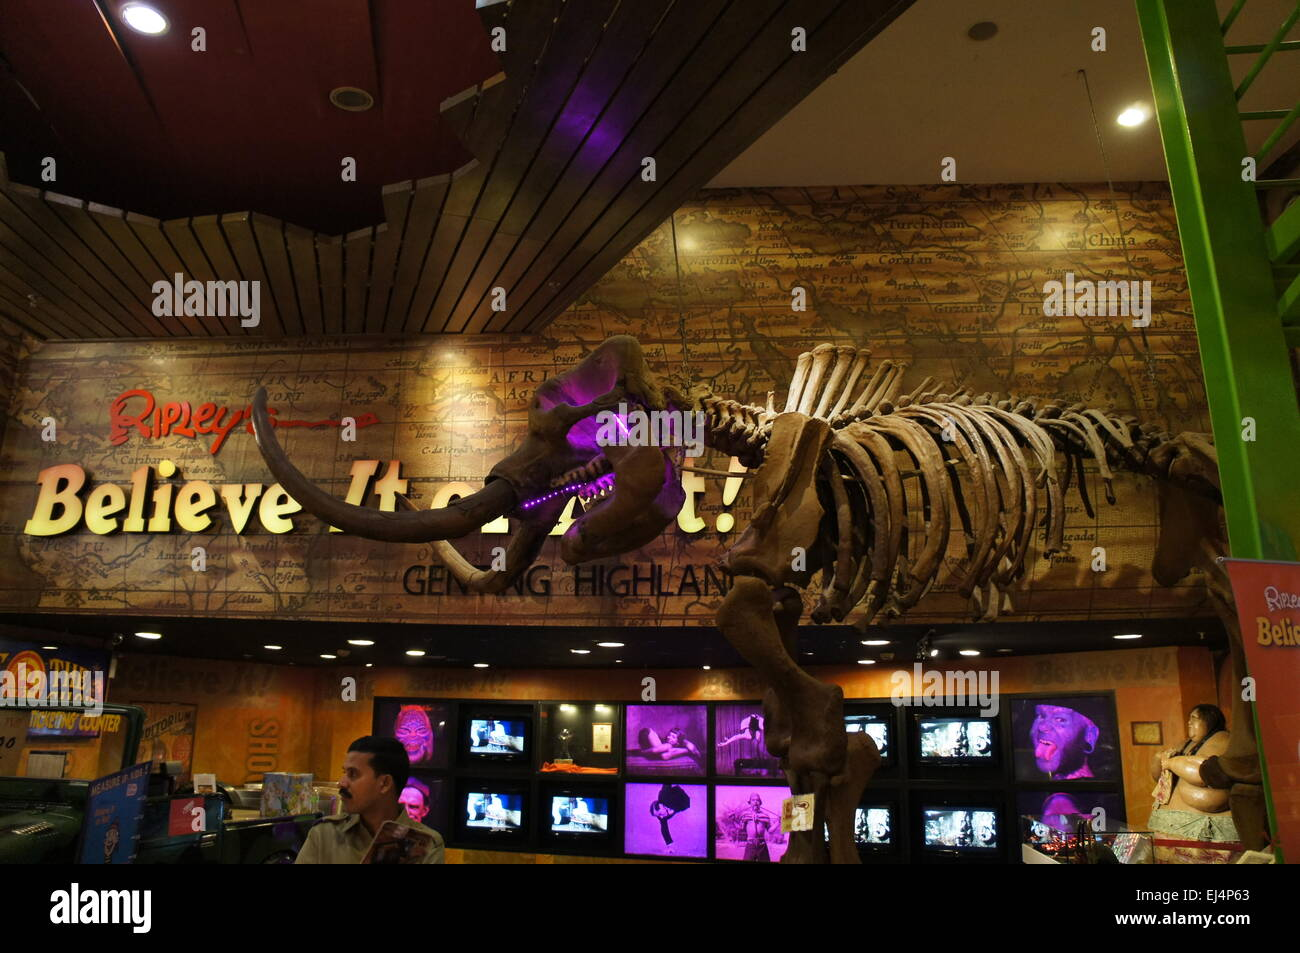 Ripley's  Believe it or not in Genting Highlands, Malaysia - Stock Image